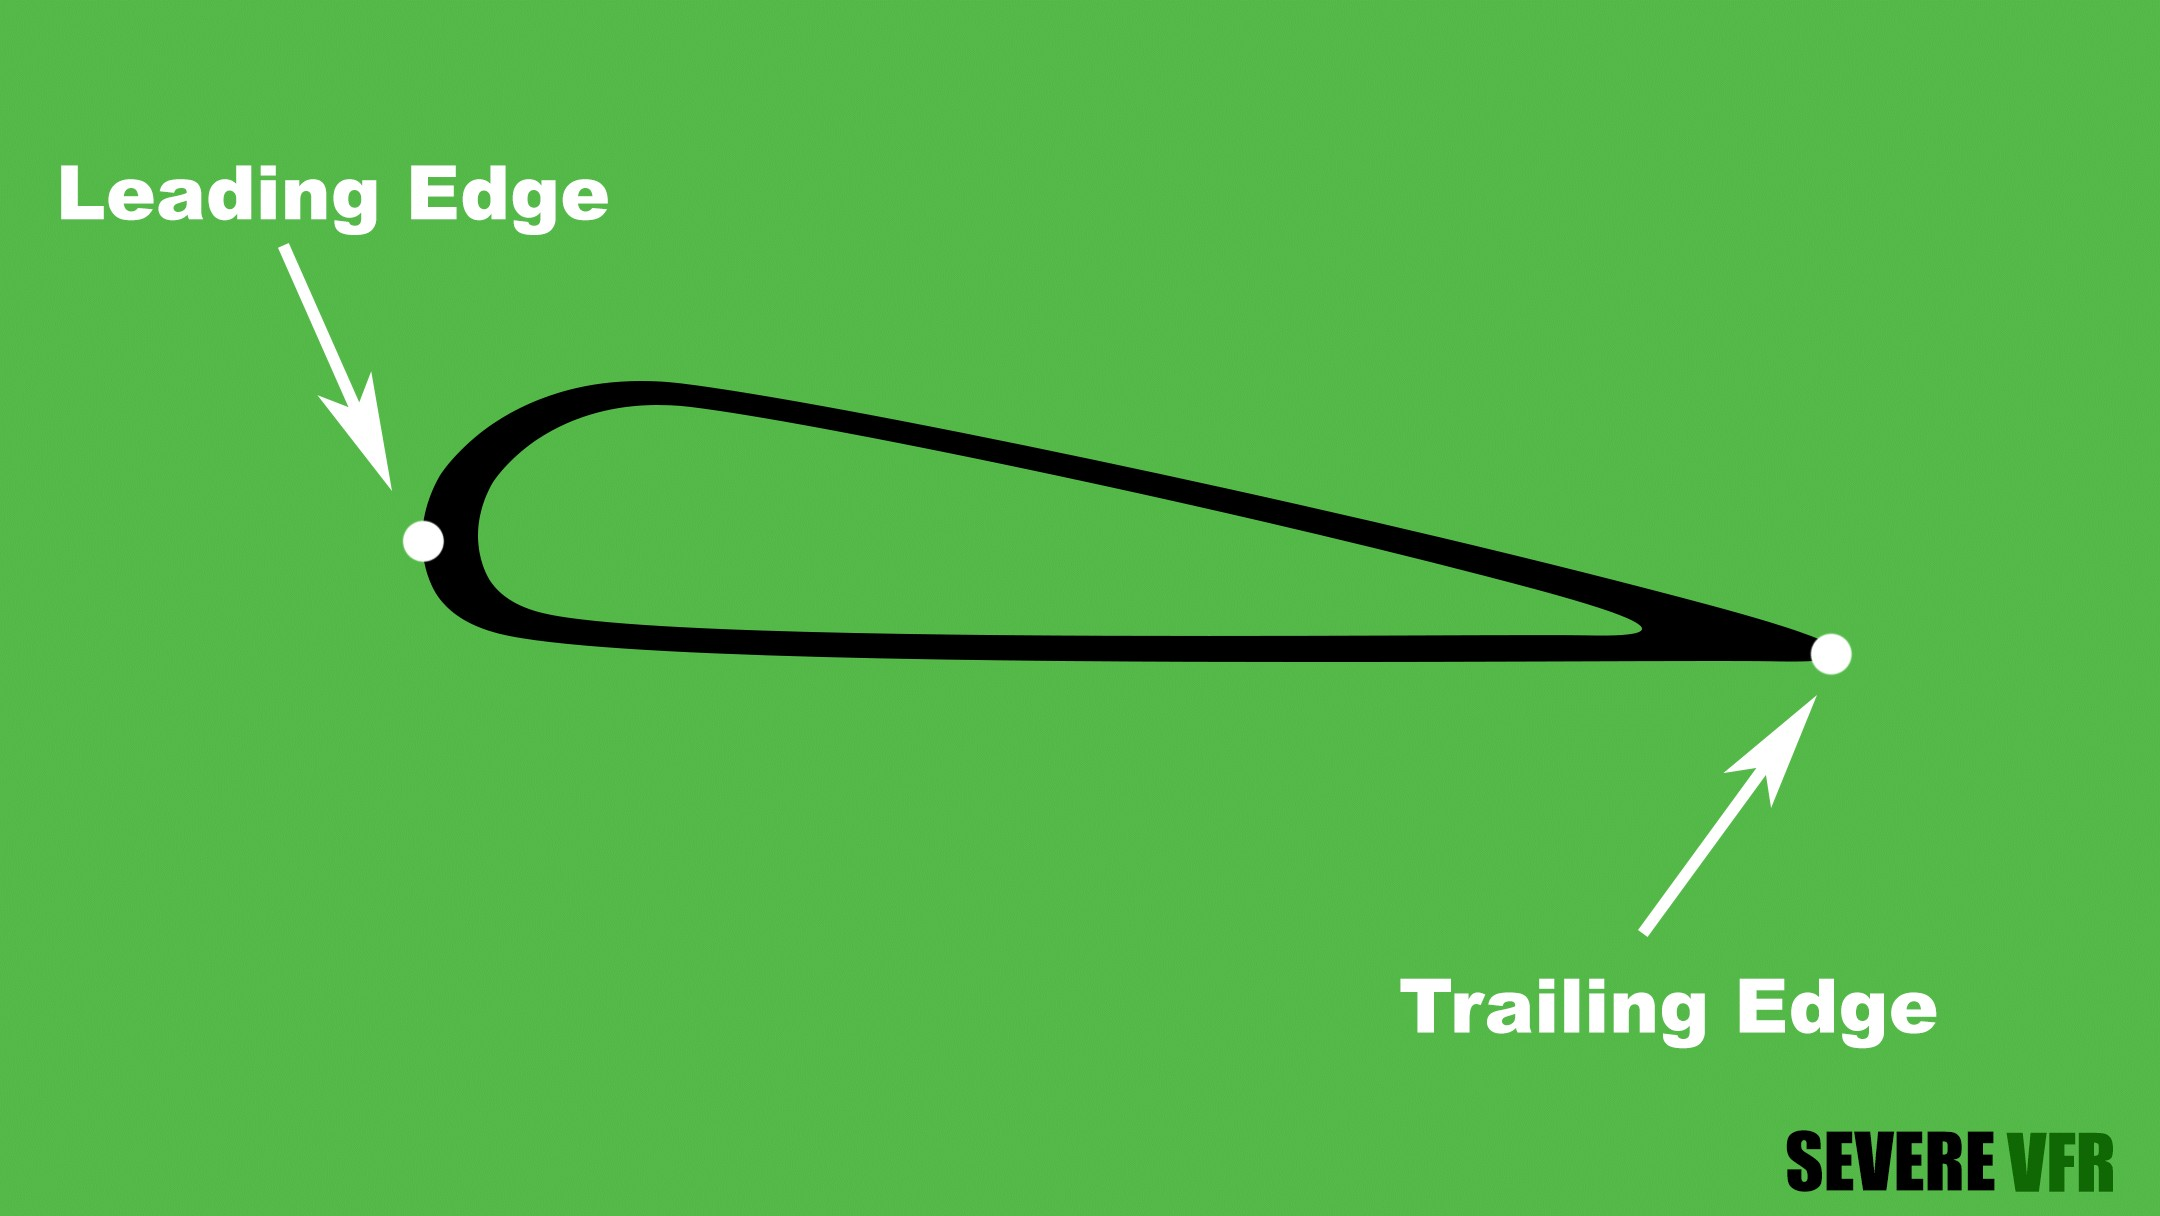 Airfoil leading edge and trailing edge graphic